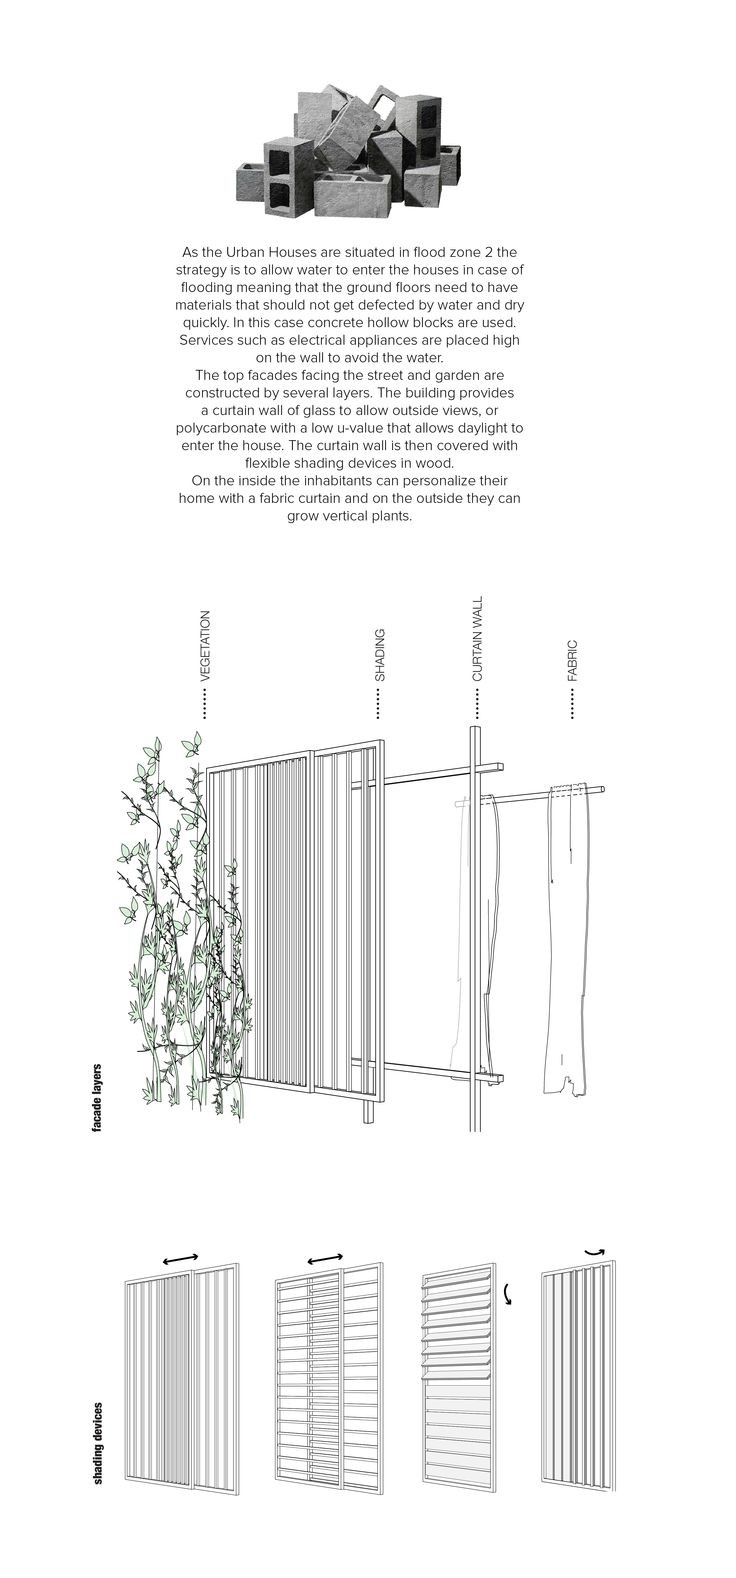 Urban Houses - layered facades for flexibility. Can exclude direct sun light  at the same time as it allows daylight and cross ventilation.